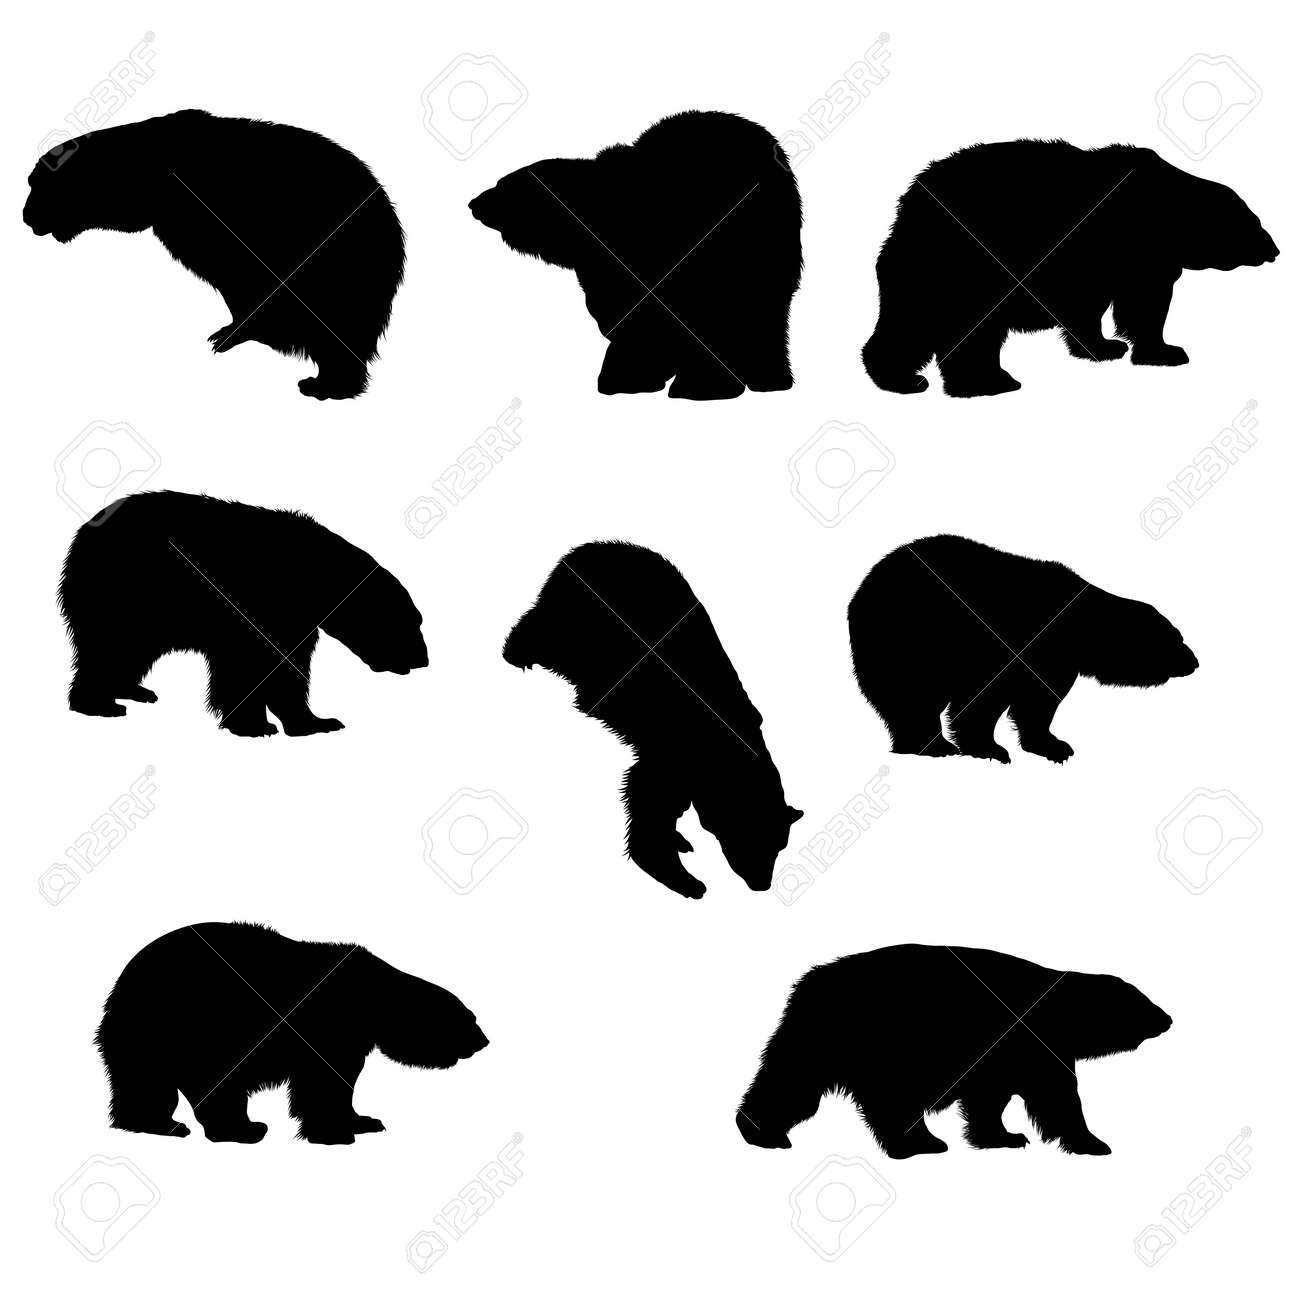 8 bear silhouettes. Smooth and Clean Lines. High detailed bear silhouettes. Vector Illustration. - 166873258